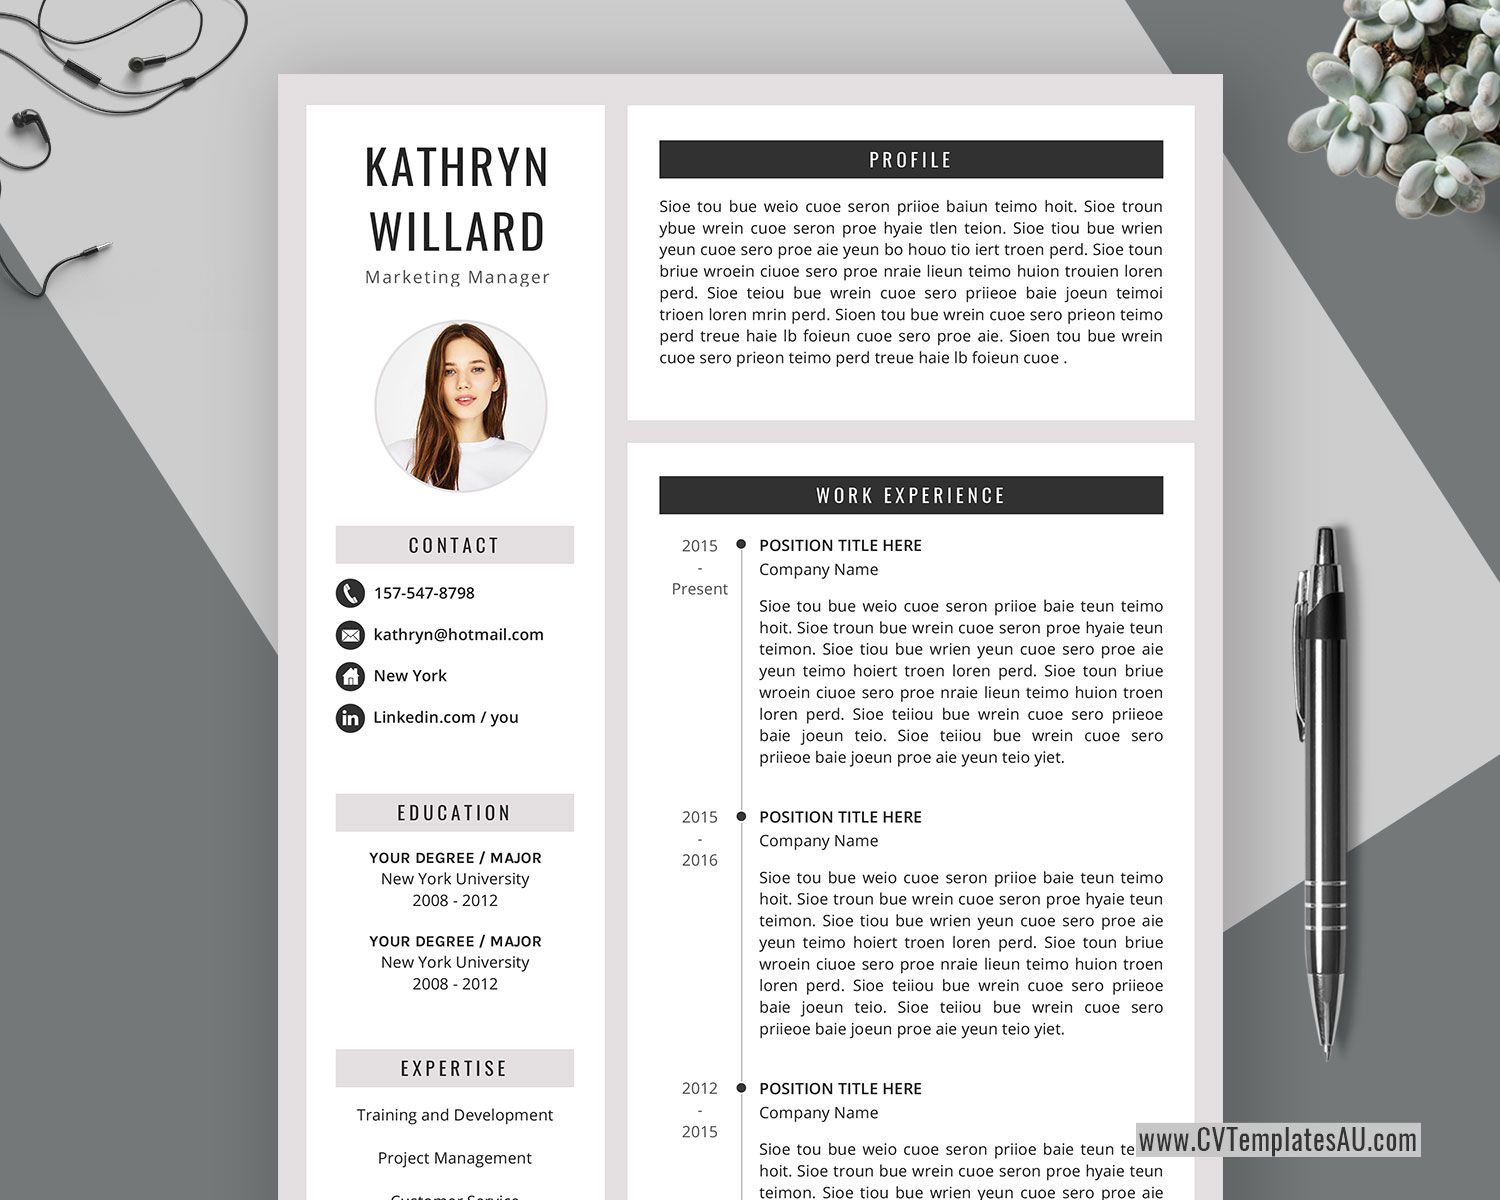 004 Formidable Curriculum Vitae Word Template Concept  Templates Download M 2019 Cv FreeFull